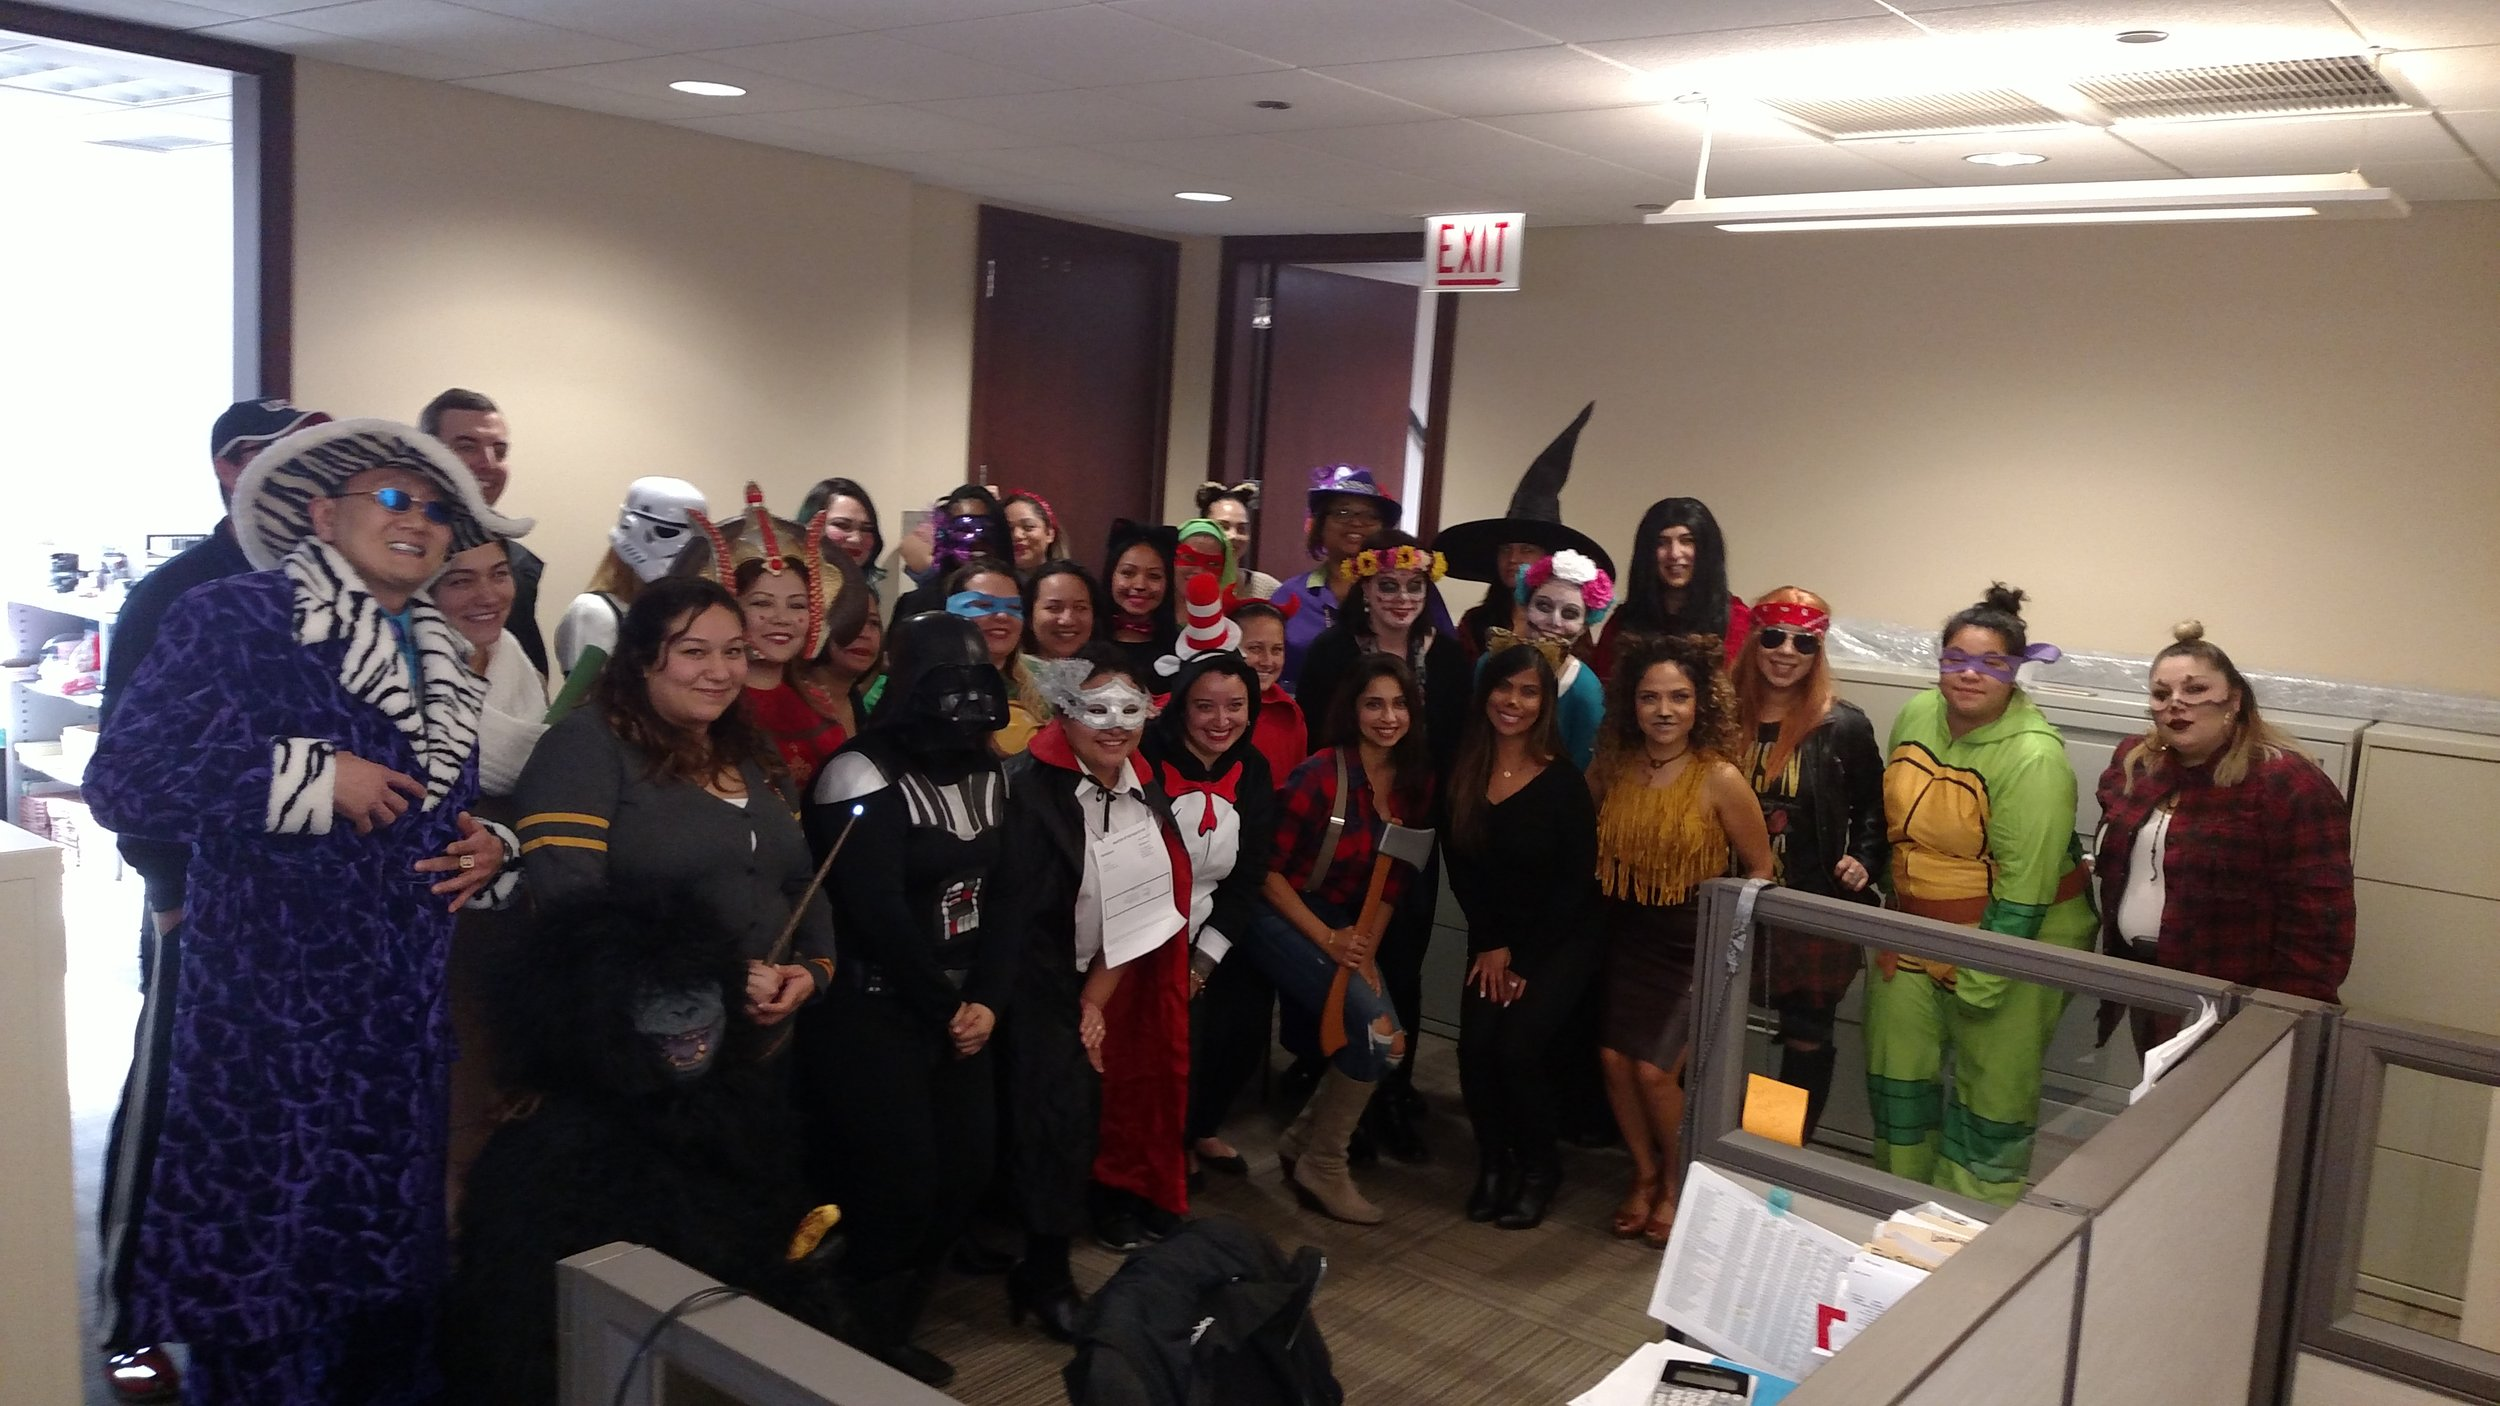 Dental Dreams home office employees in costume for halloween.